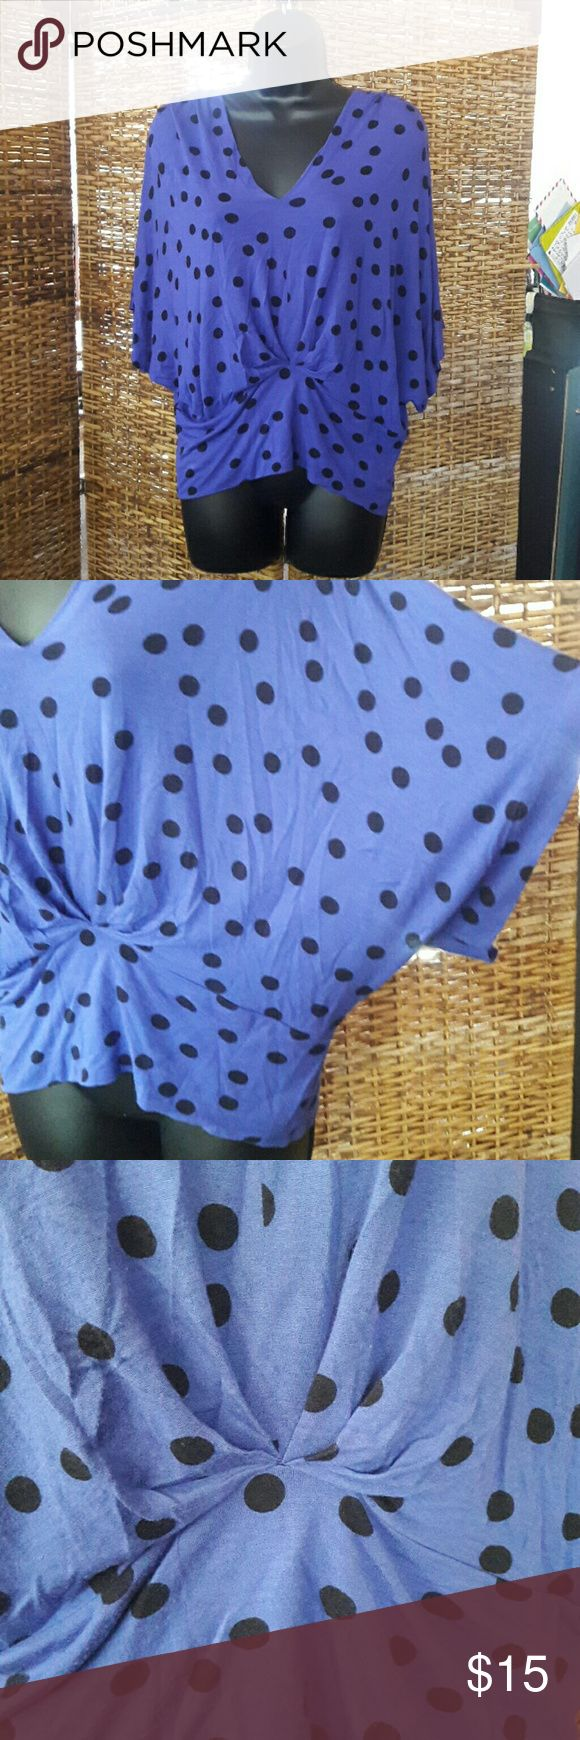 Blue & Black Polka Dot Batwing Top, ModRetro sz XS Sized XS, but I'm a size 10 (M/L) and it fits me just fine. Roomy cut that cinches in just under bosom. Modern does retro style, super soft, stretchy t-shirt material. Made by Pleione, looks similar to styles sold by Modcloth & other retro clothing retailers. No imperfections, I just don't wear it that much & it's a really cool piece. Hits just at waist, so perfect to pair with pencil skirts or tulip skirts! Pleione Tops Blouses